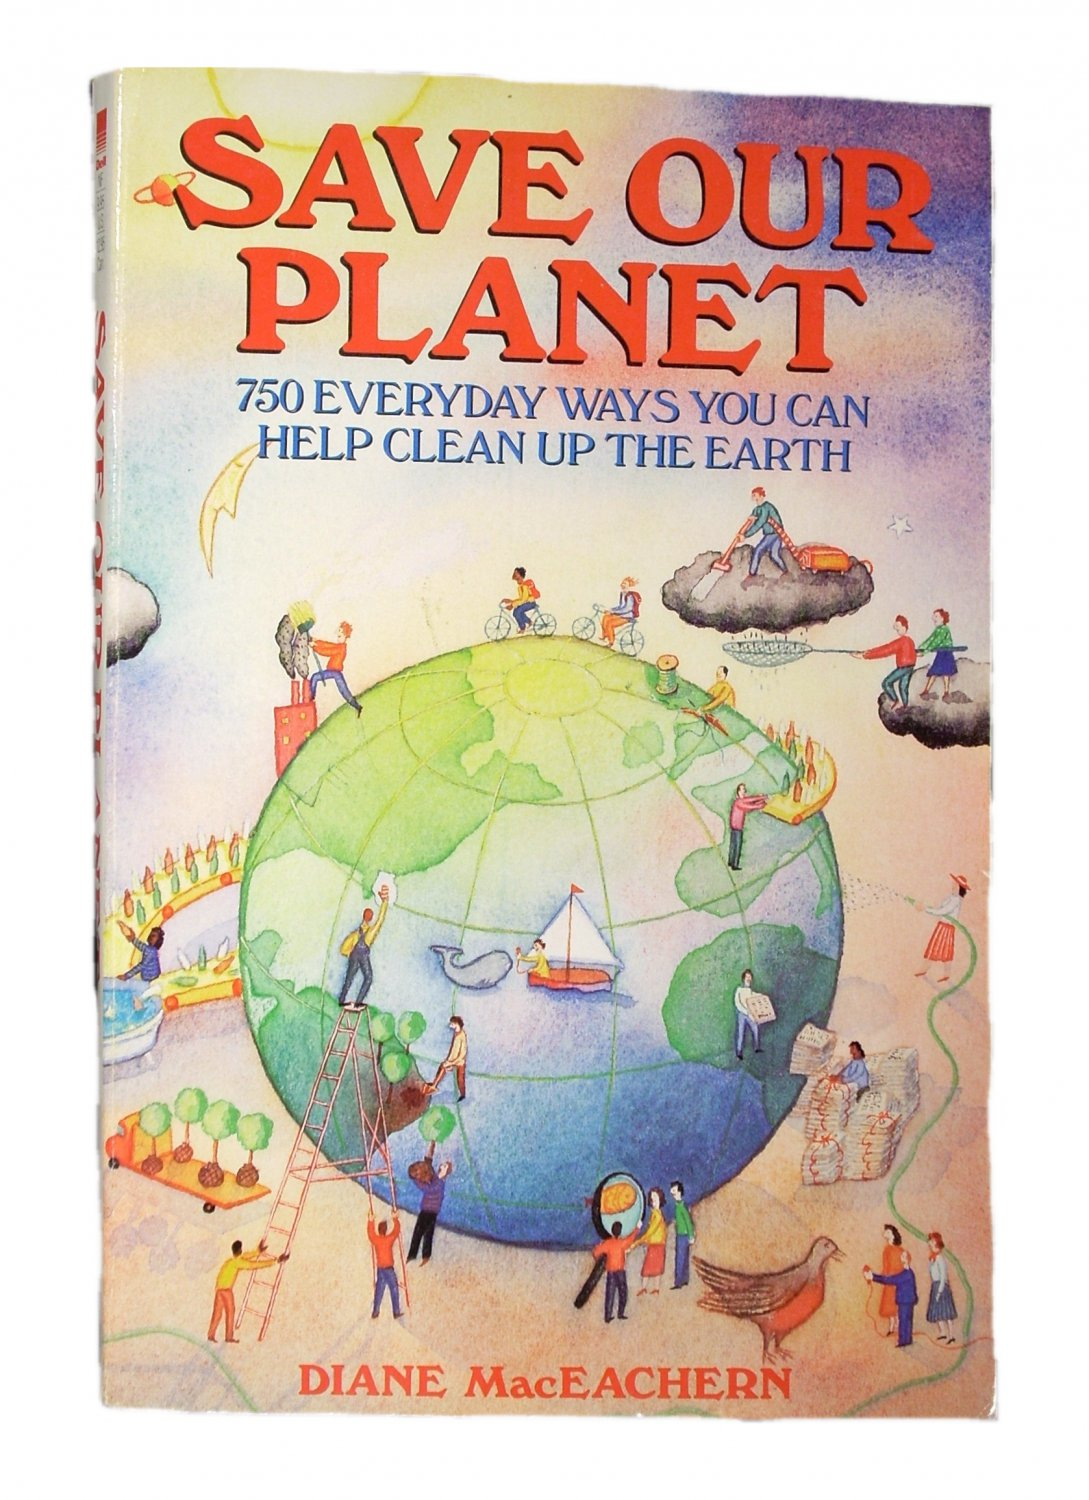 Save Our Planet:750 Everyday Ways You Can Help Clean Up The Earth by Diane MacEachern Paperback 1990